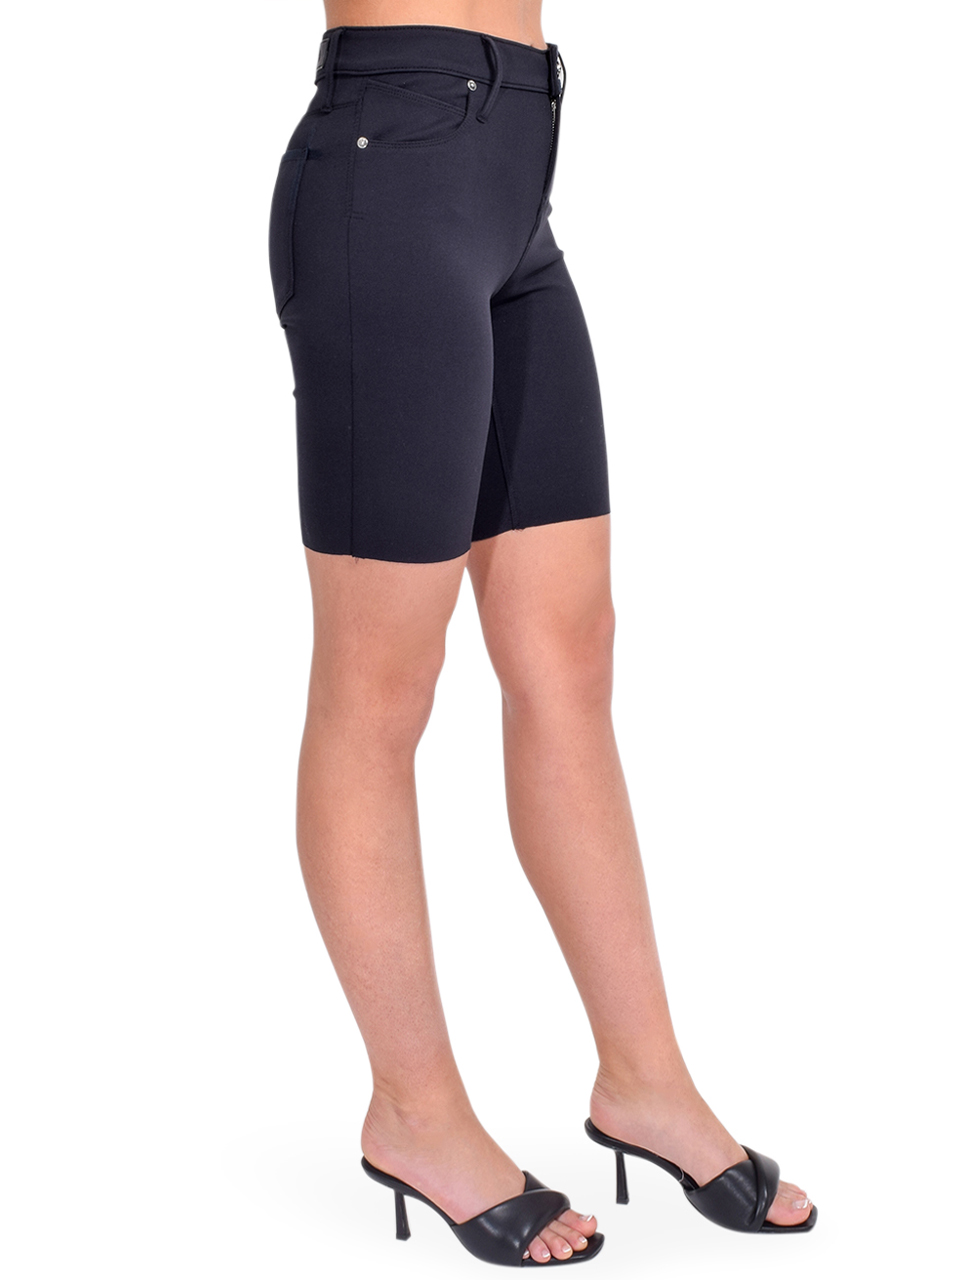 RTA Toure Cycle Short in Navy Side View